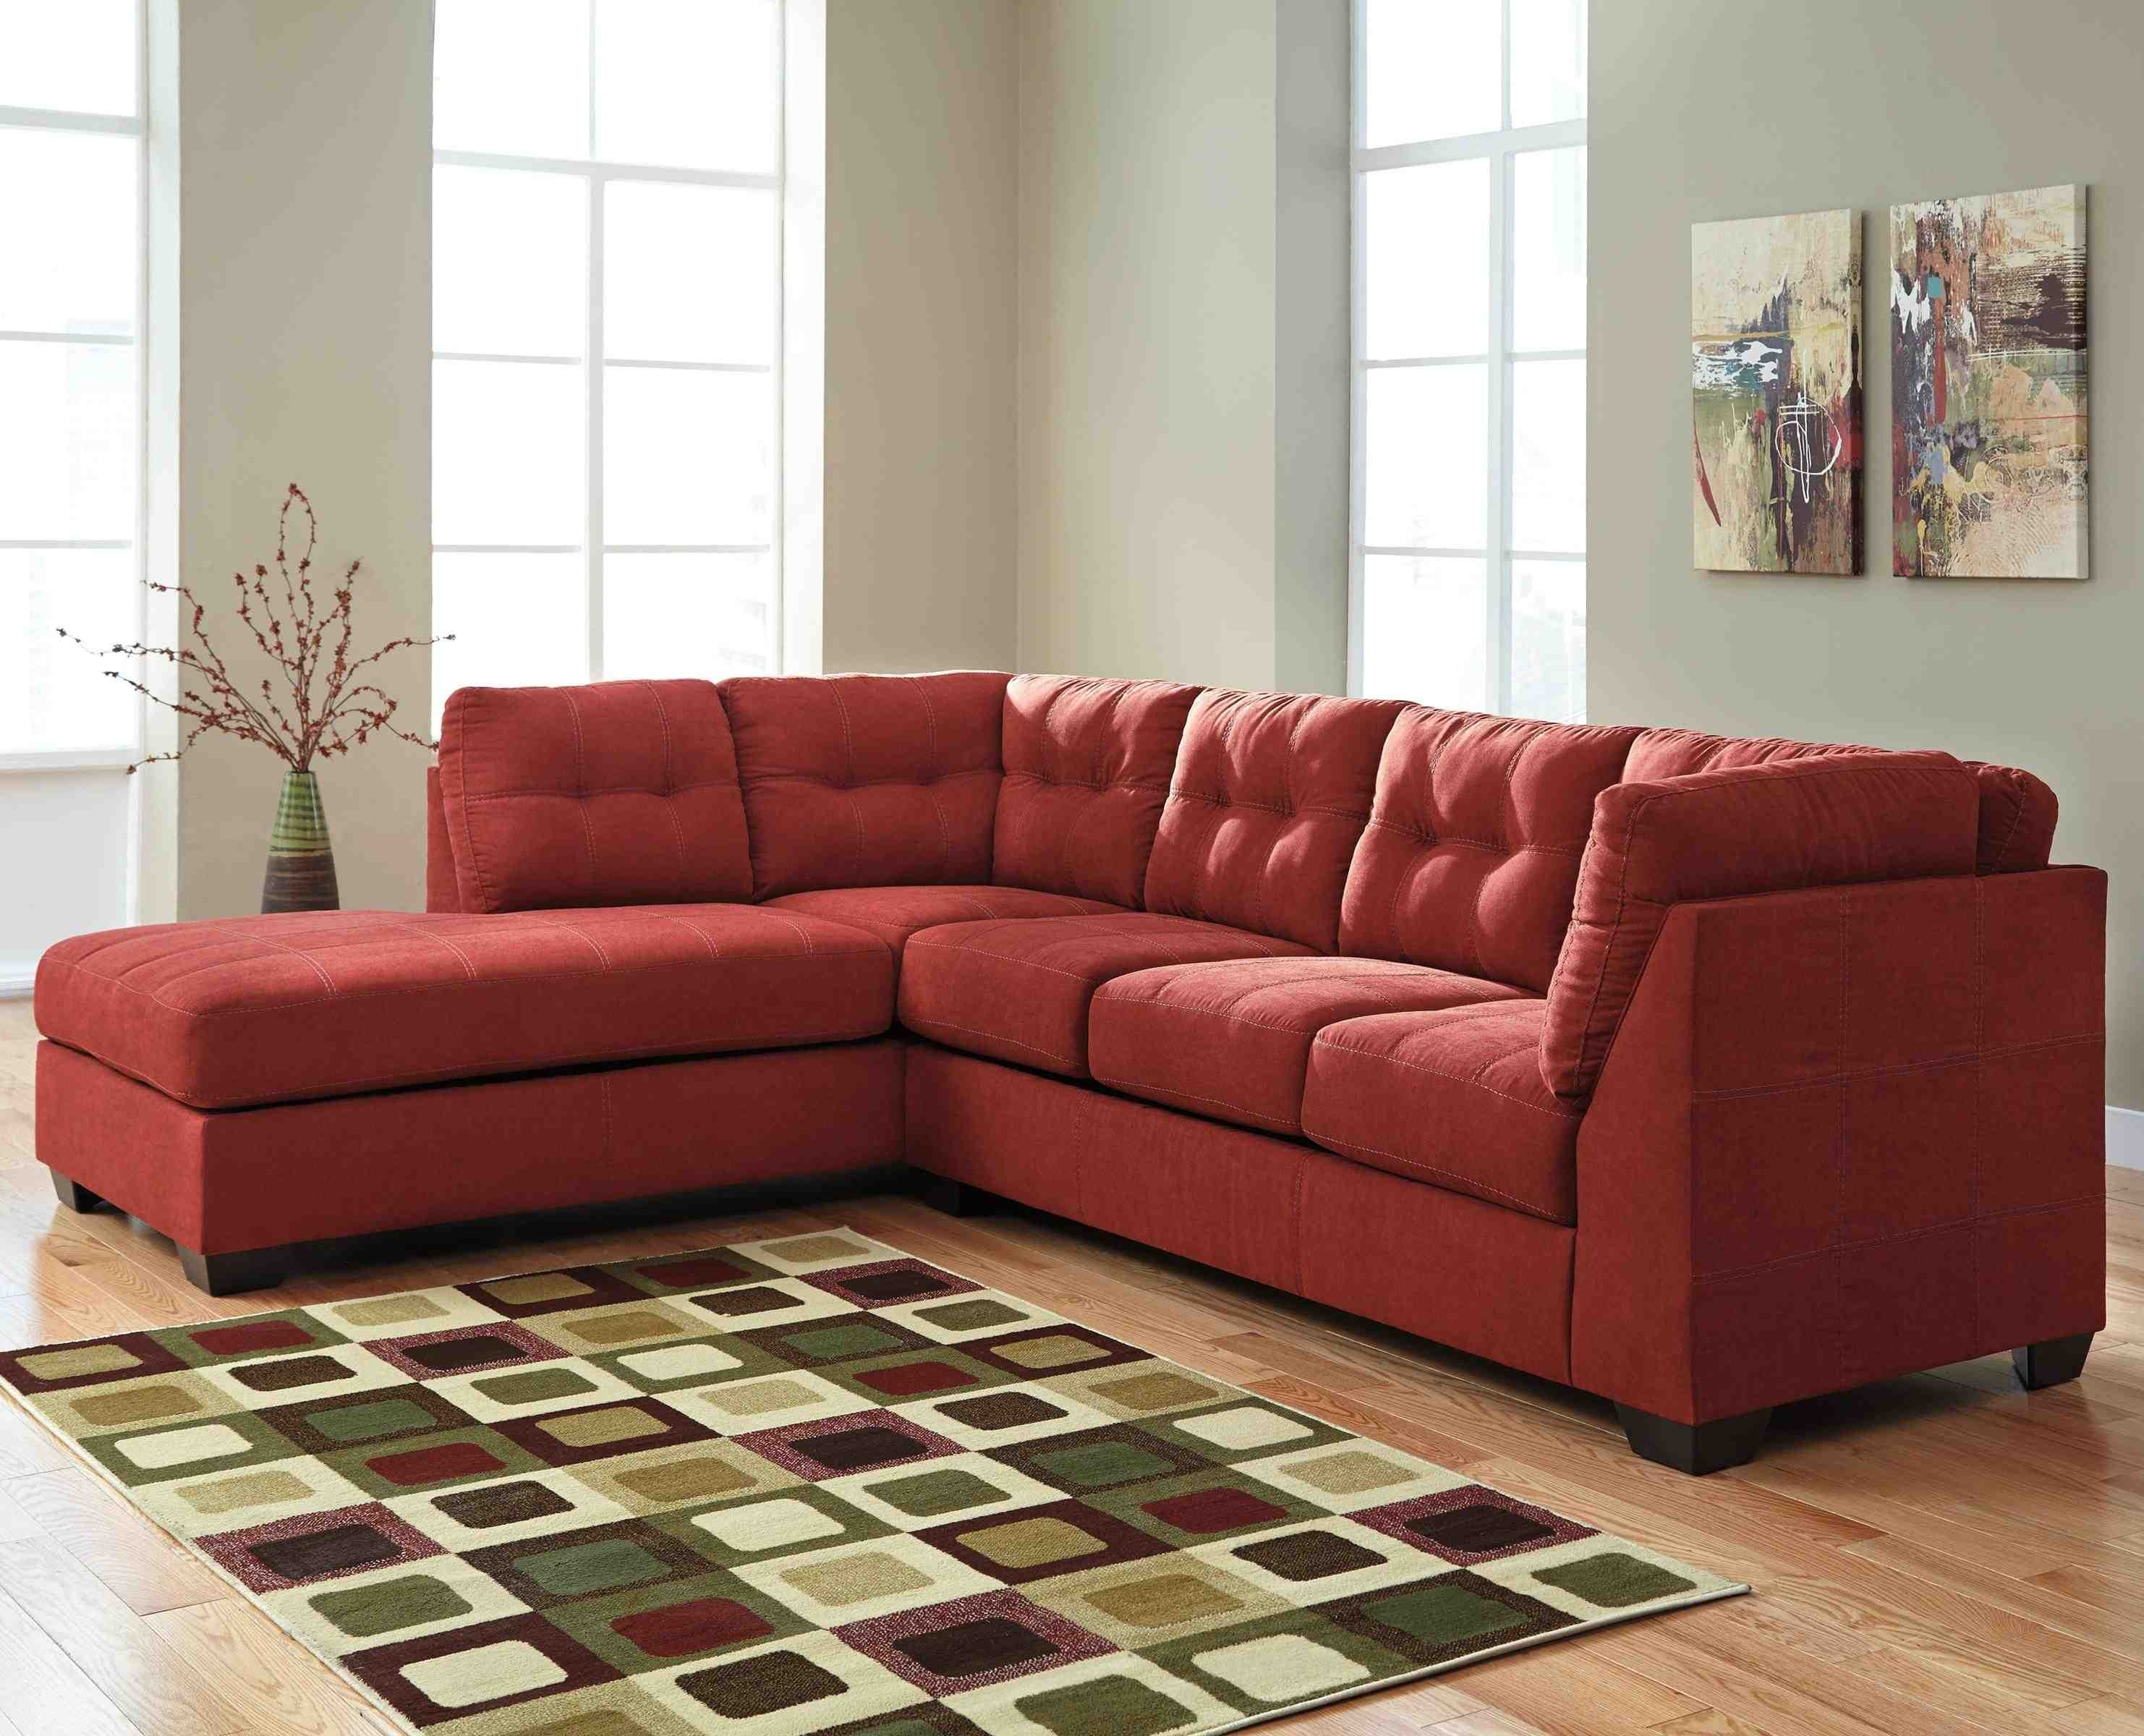 Microfiberctional Sofa With Chaise Amazing Photo Inspirations Inside Arrowmask 2 Piece Sectionals With Raf Chaise (Image 20 of 25)